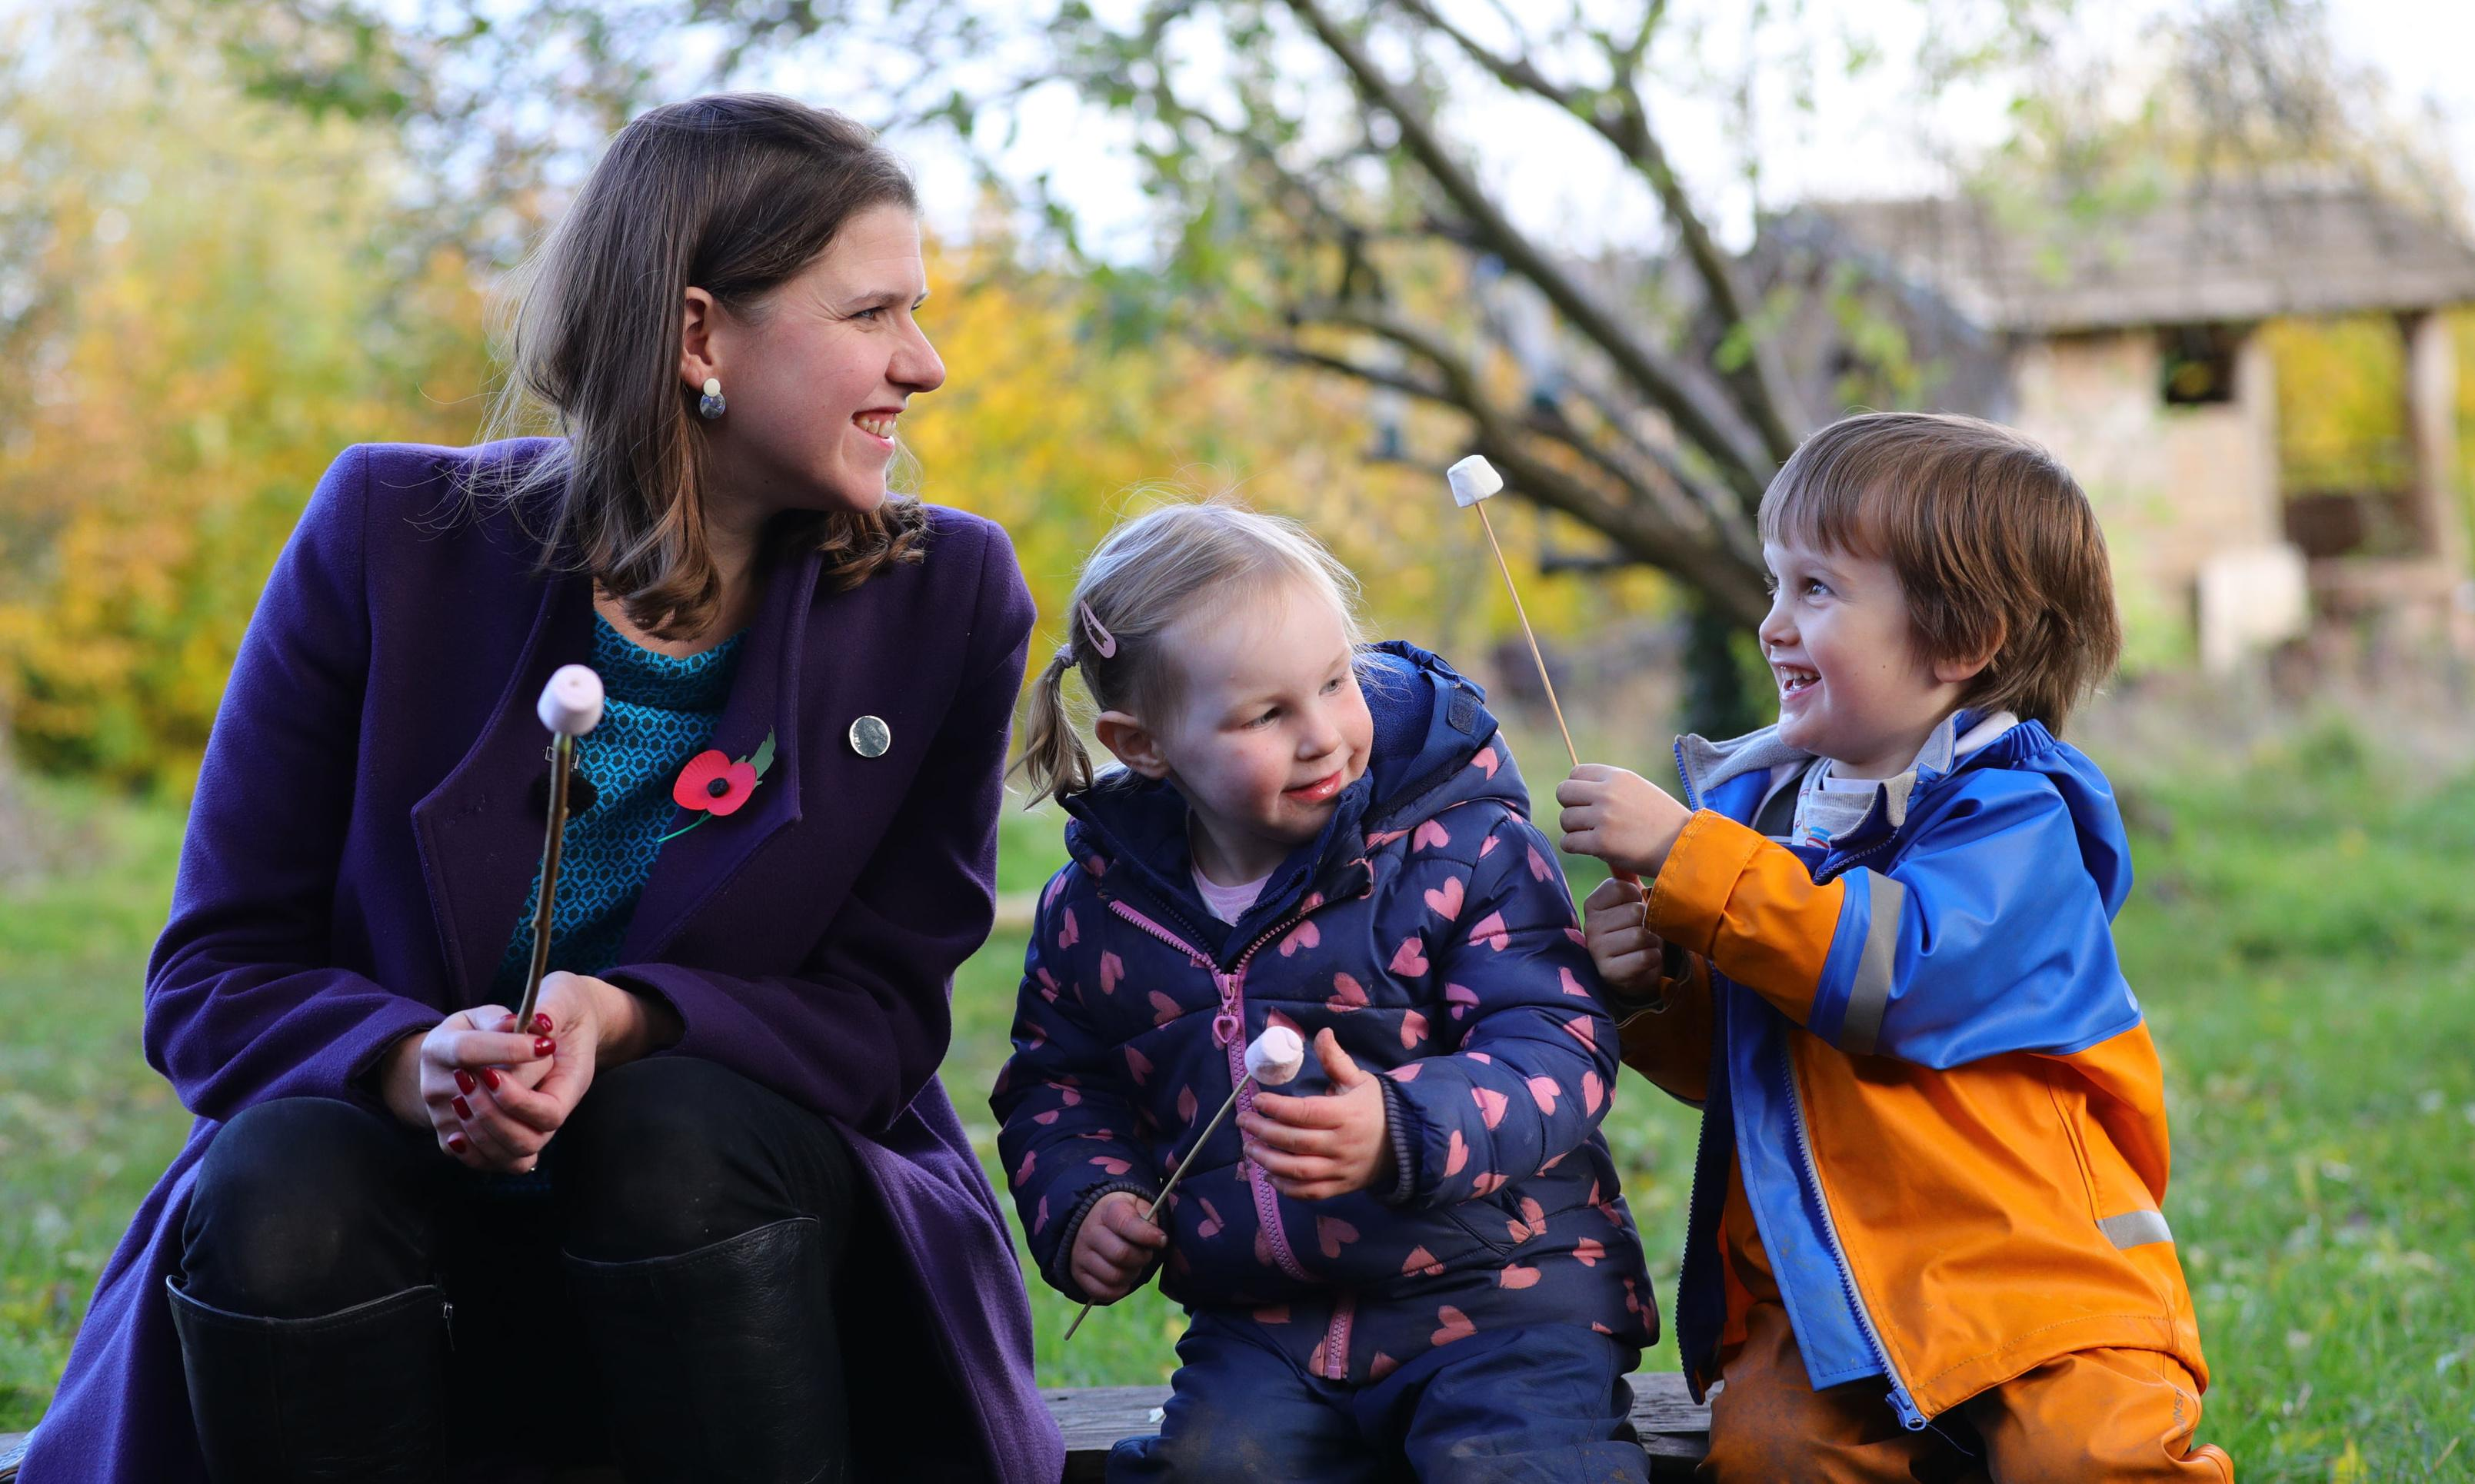 Lib Dems promise 35 hours of free childcare from nine months old